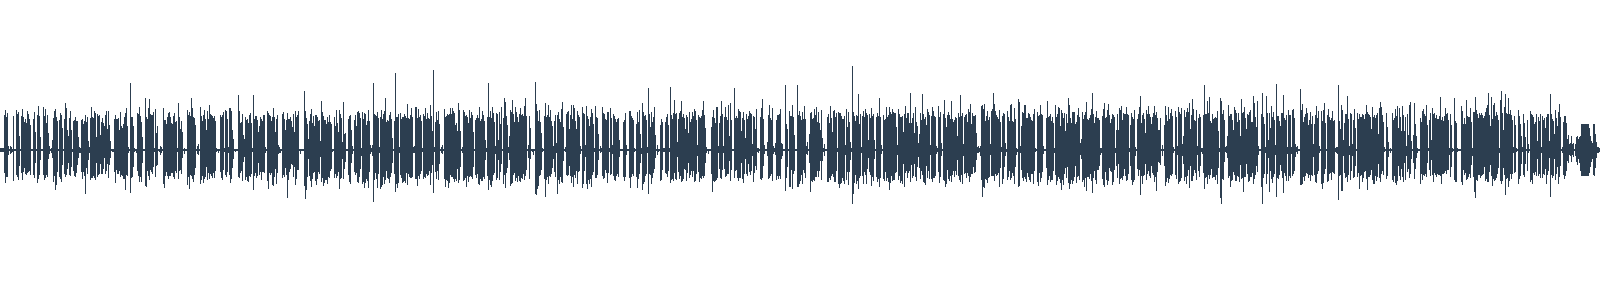 Koho volím do Brusselu waveform